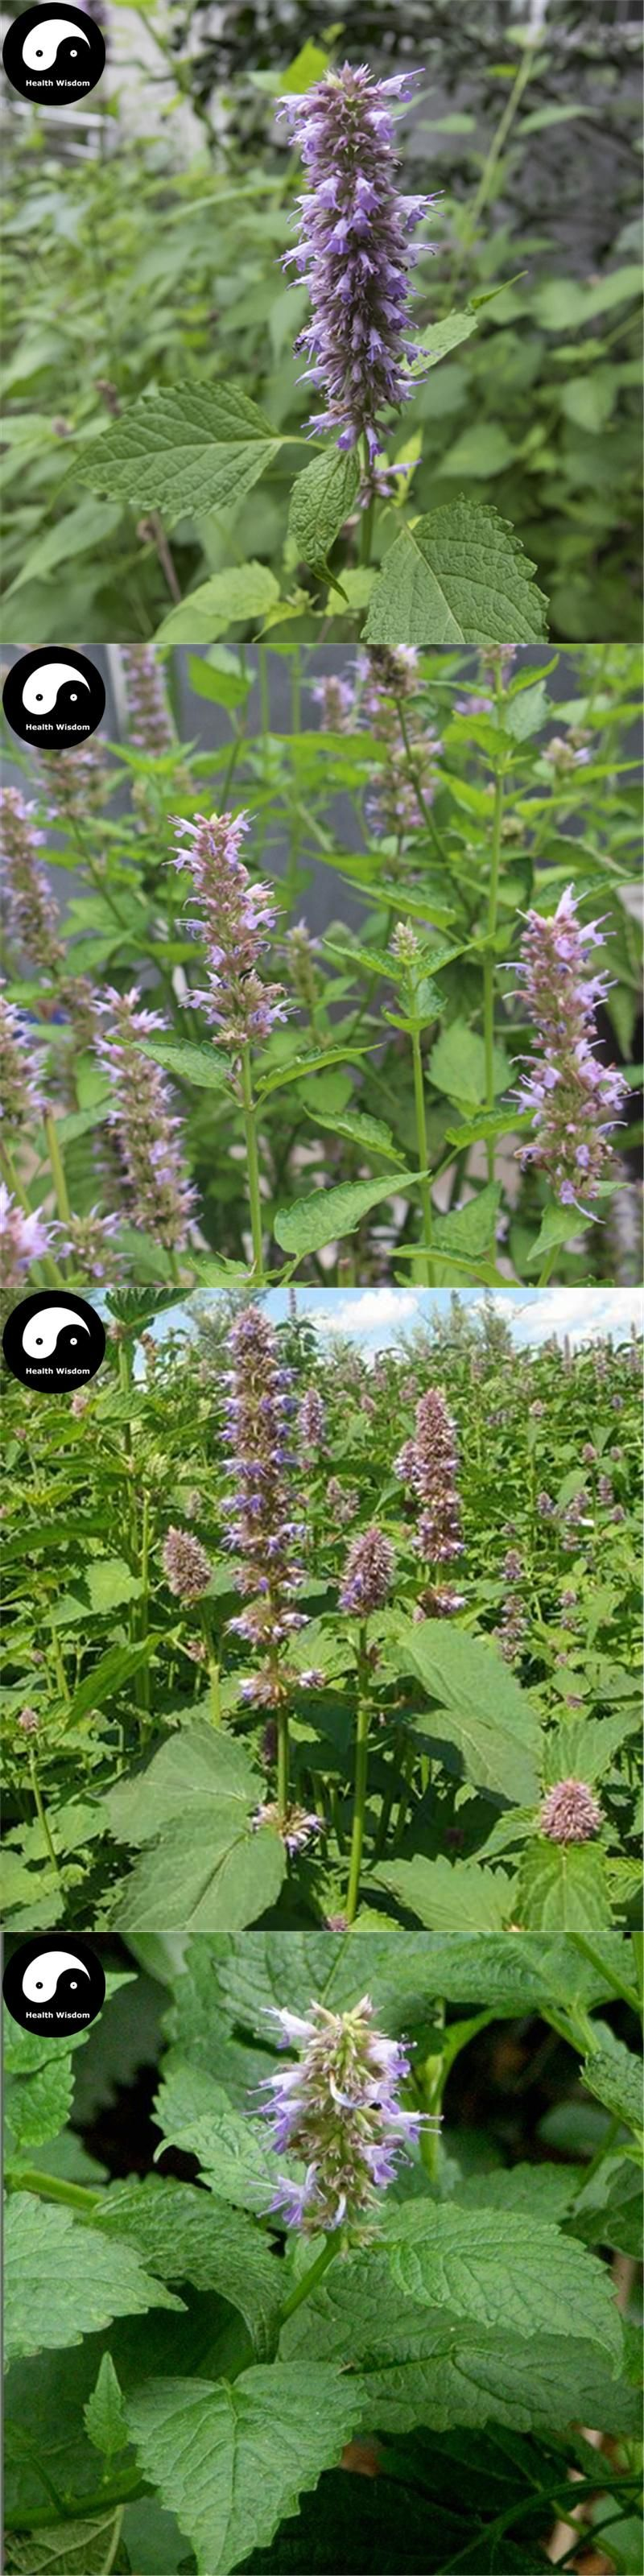 Buy Potchouli Herb Seeds 500pcs Plant Agastache Rugosa For Herba